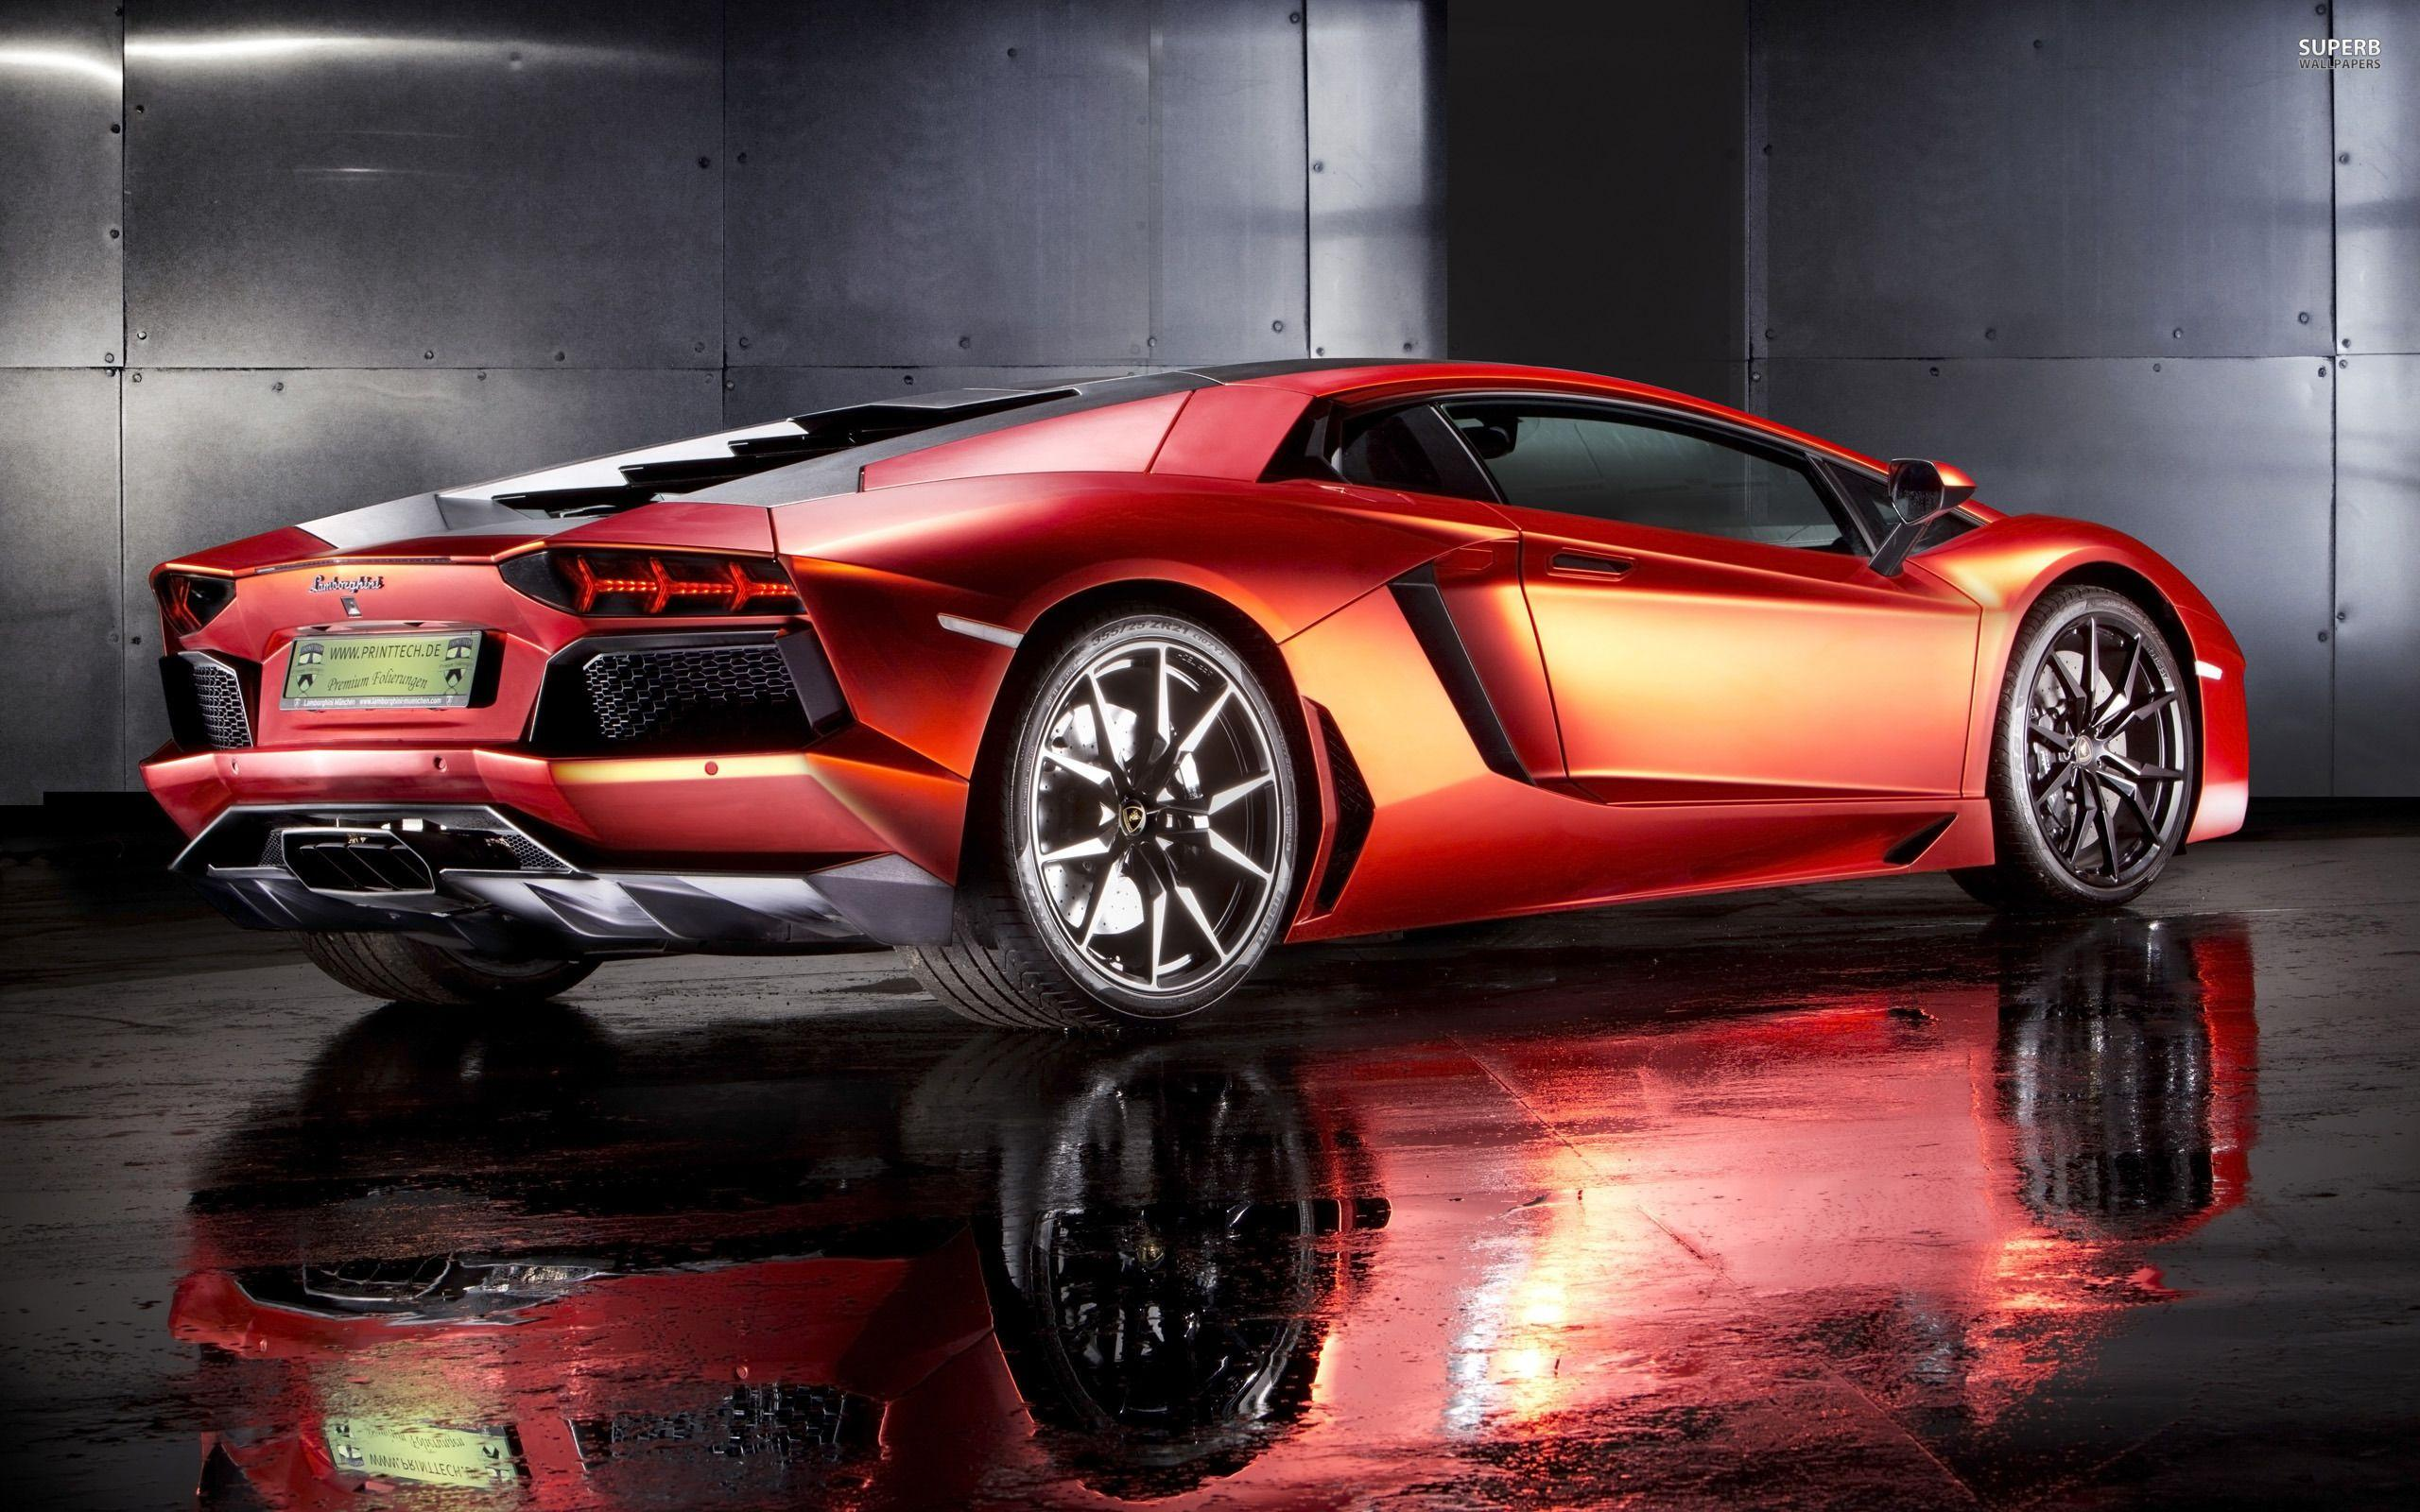 Lamborghini Egoista Wallpapers - Wallpaper Cave